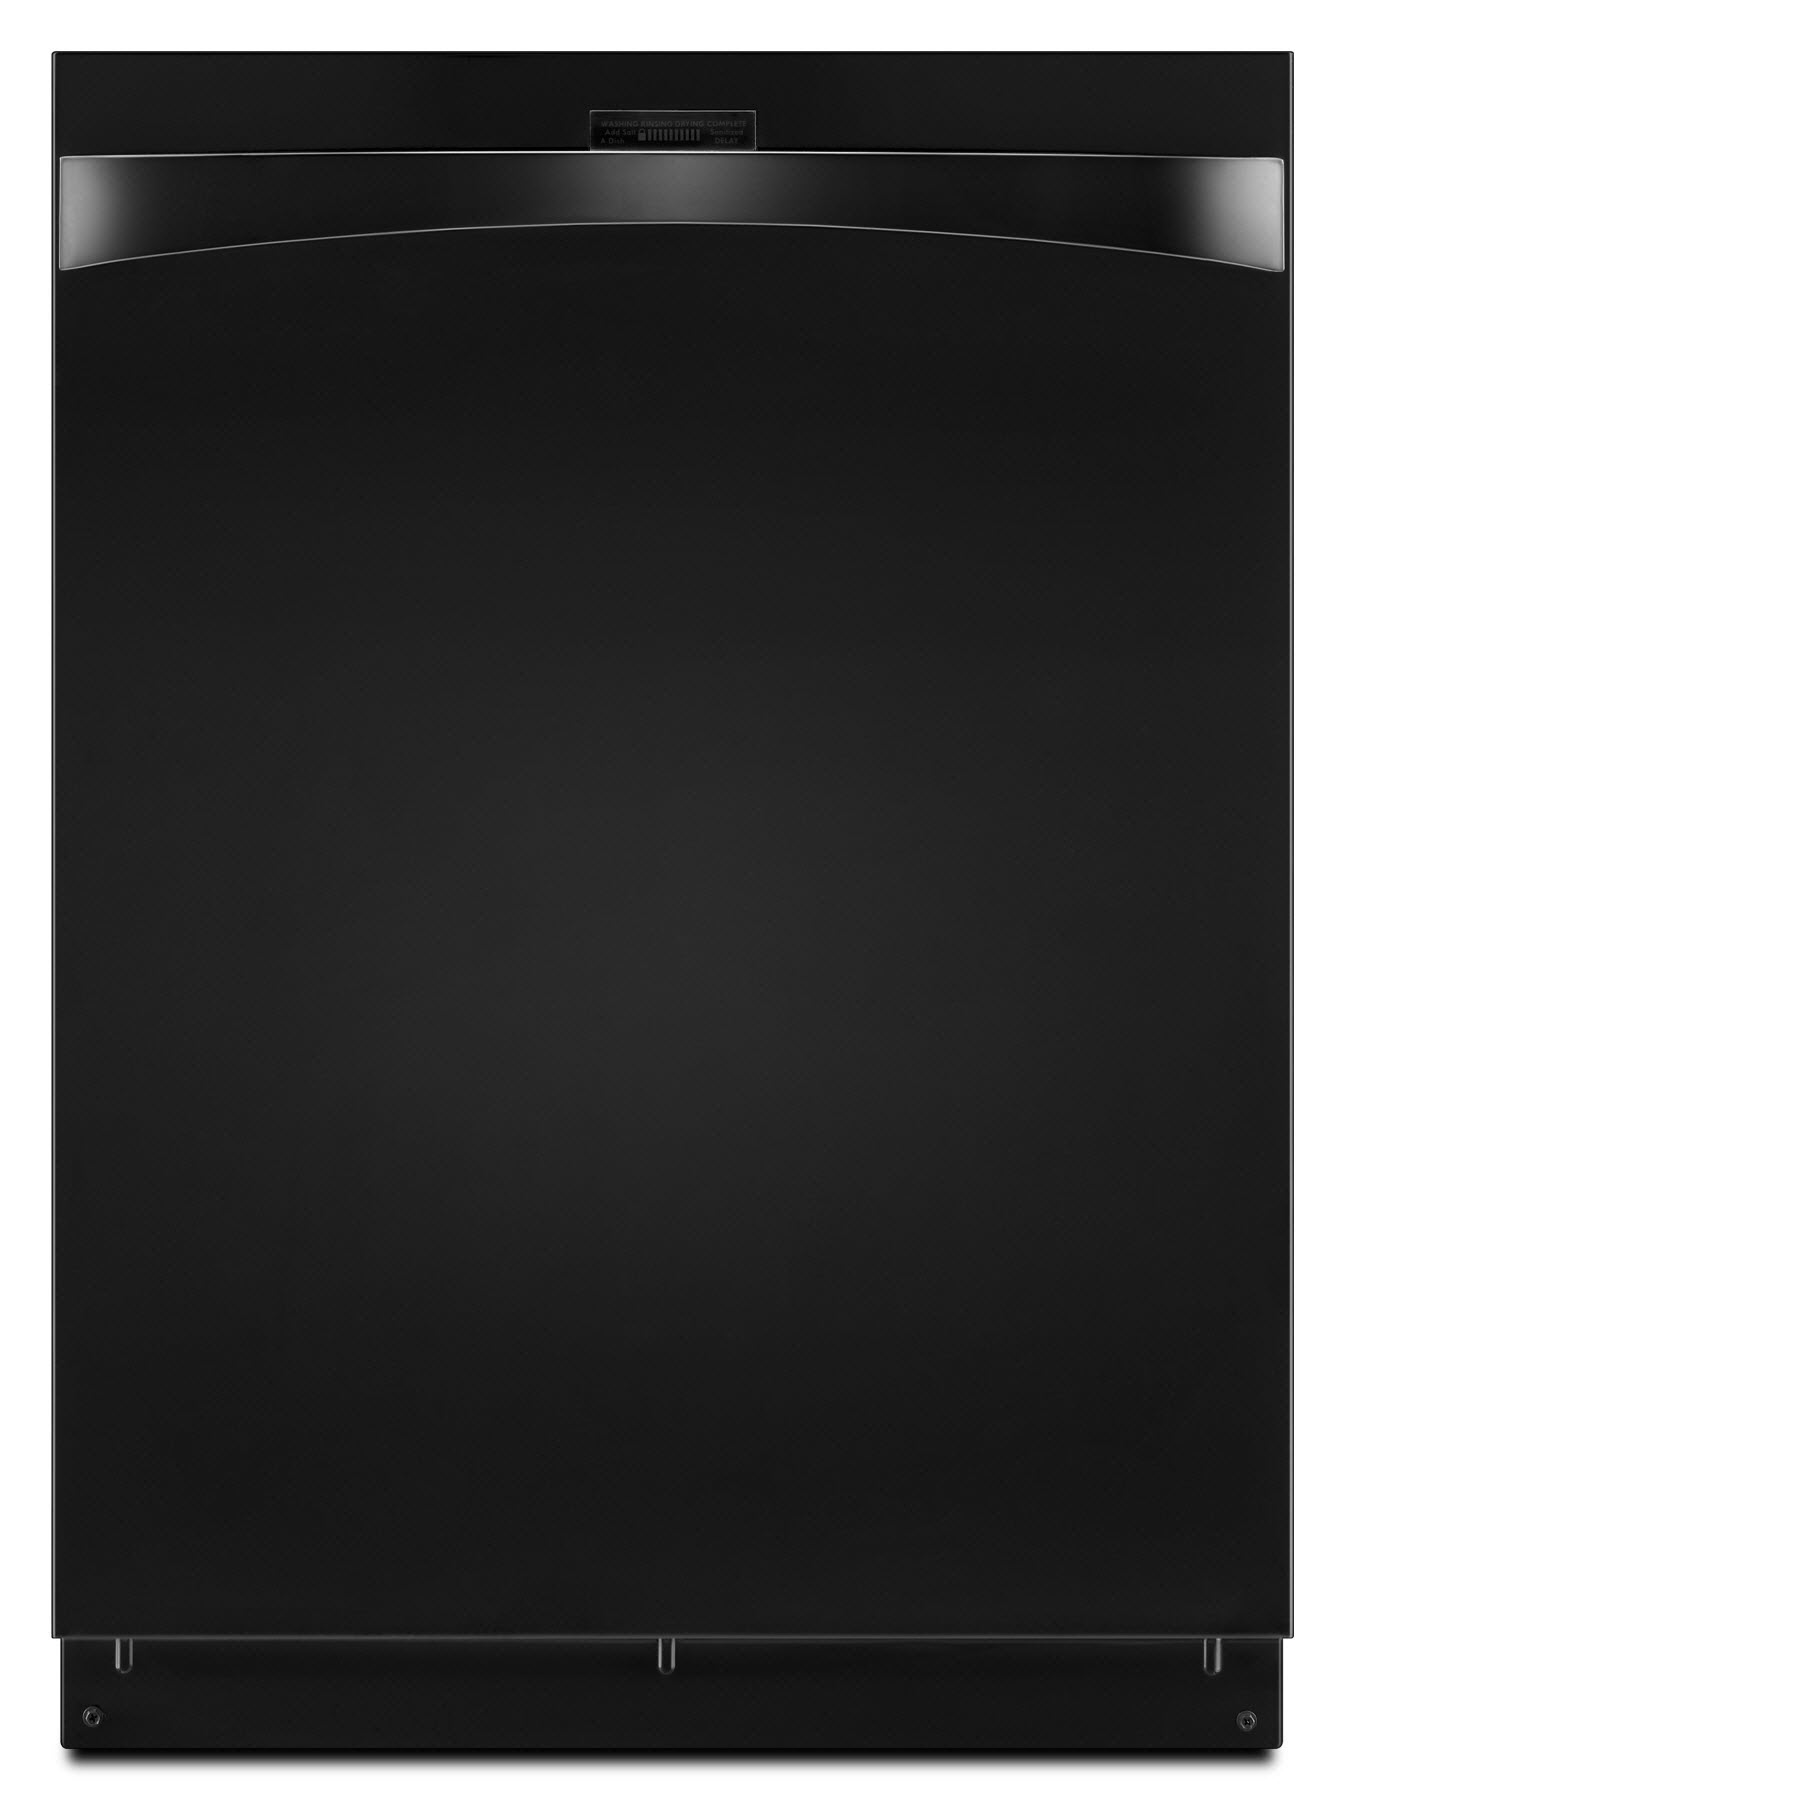 24-Built-In-Dishwasher-w-360-PowerWash-Technology-Black